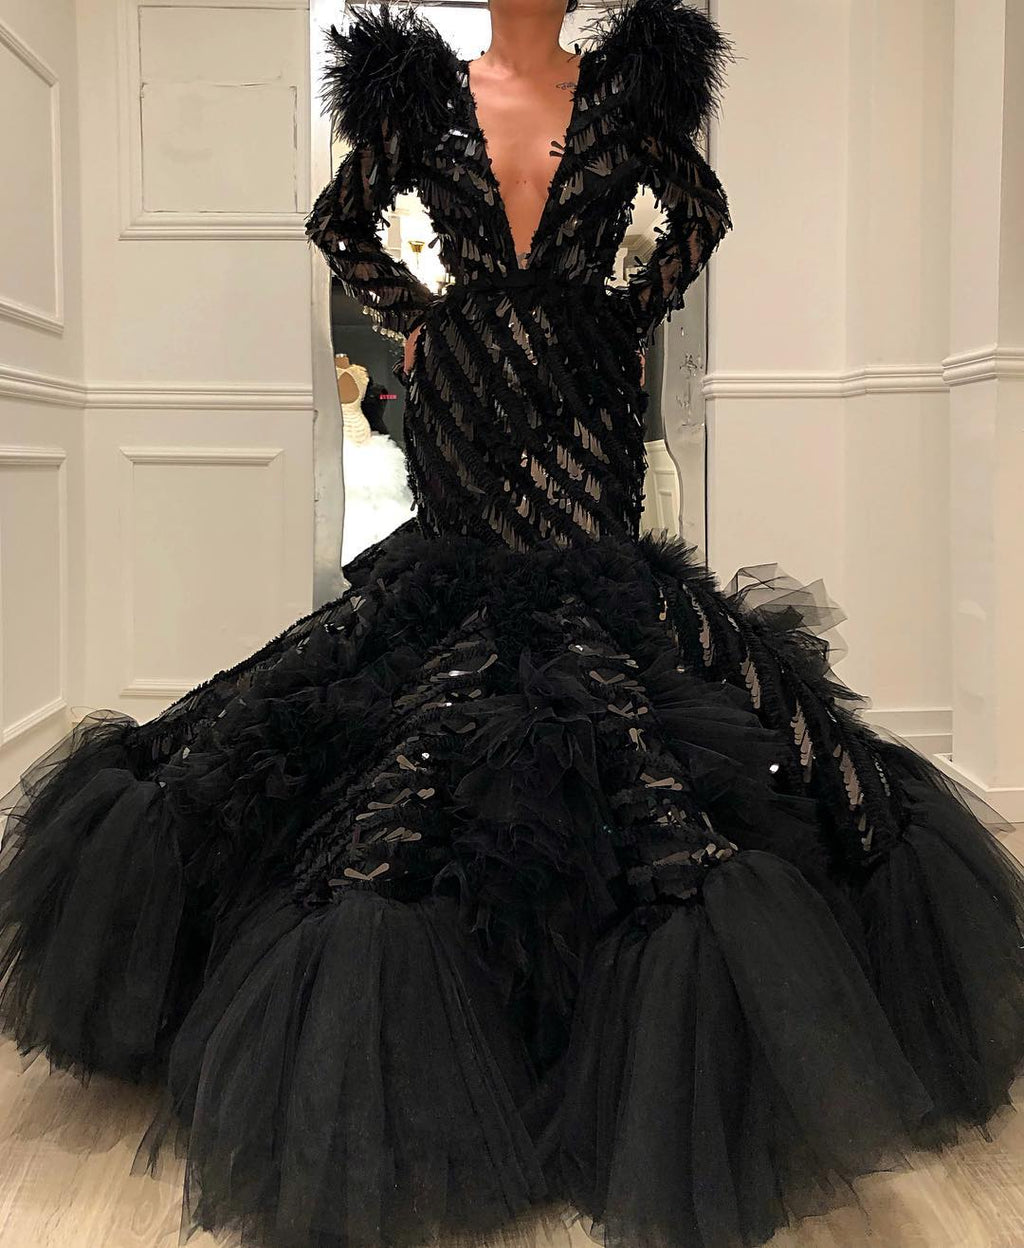 mermaid for women | mermaid for girls | mermaid for sale | mermaid for weddings | mermaid for prom | mermaid dresses | mermaid beautiful dress | mermaid dress images | mermaid for girls | mermaid design | mermaid fashion show | mermaid black sequin